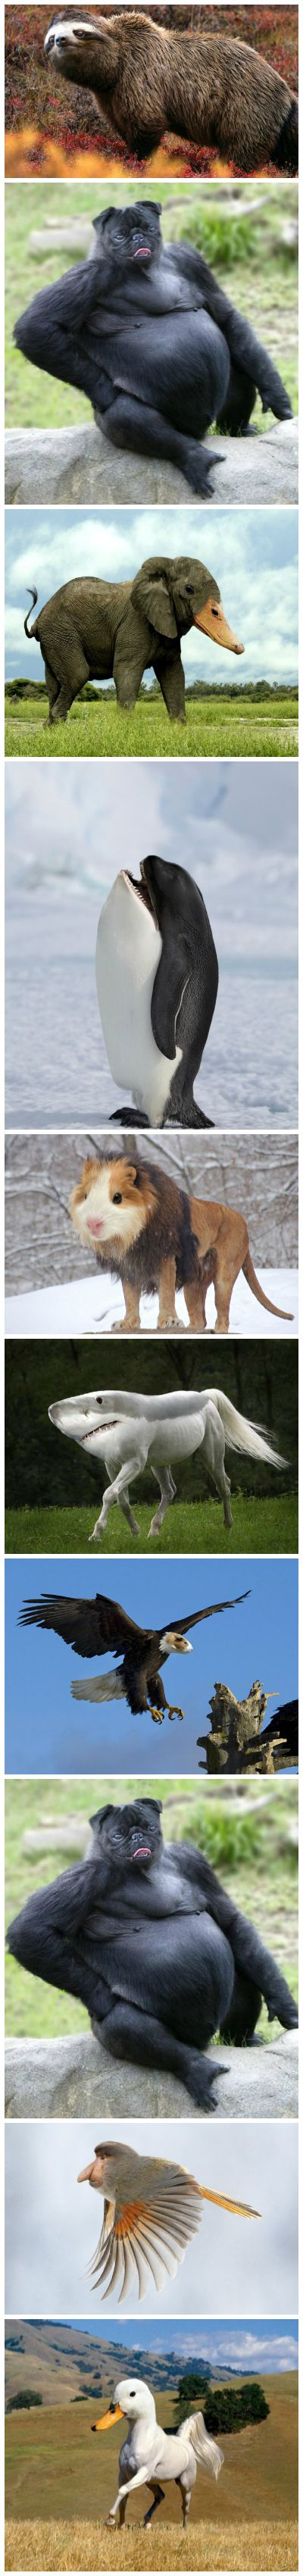 Crazy animal mashups - the dog and killer whale are the best!